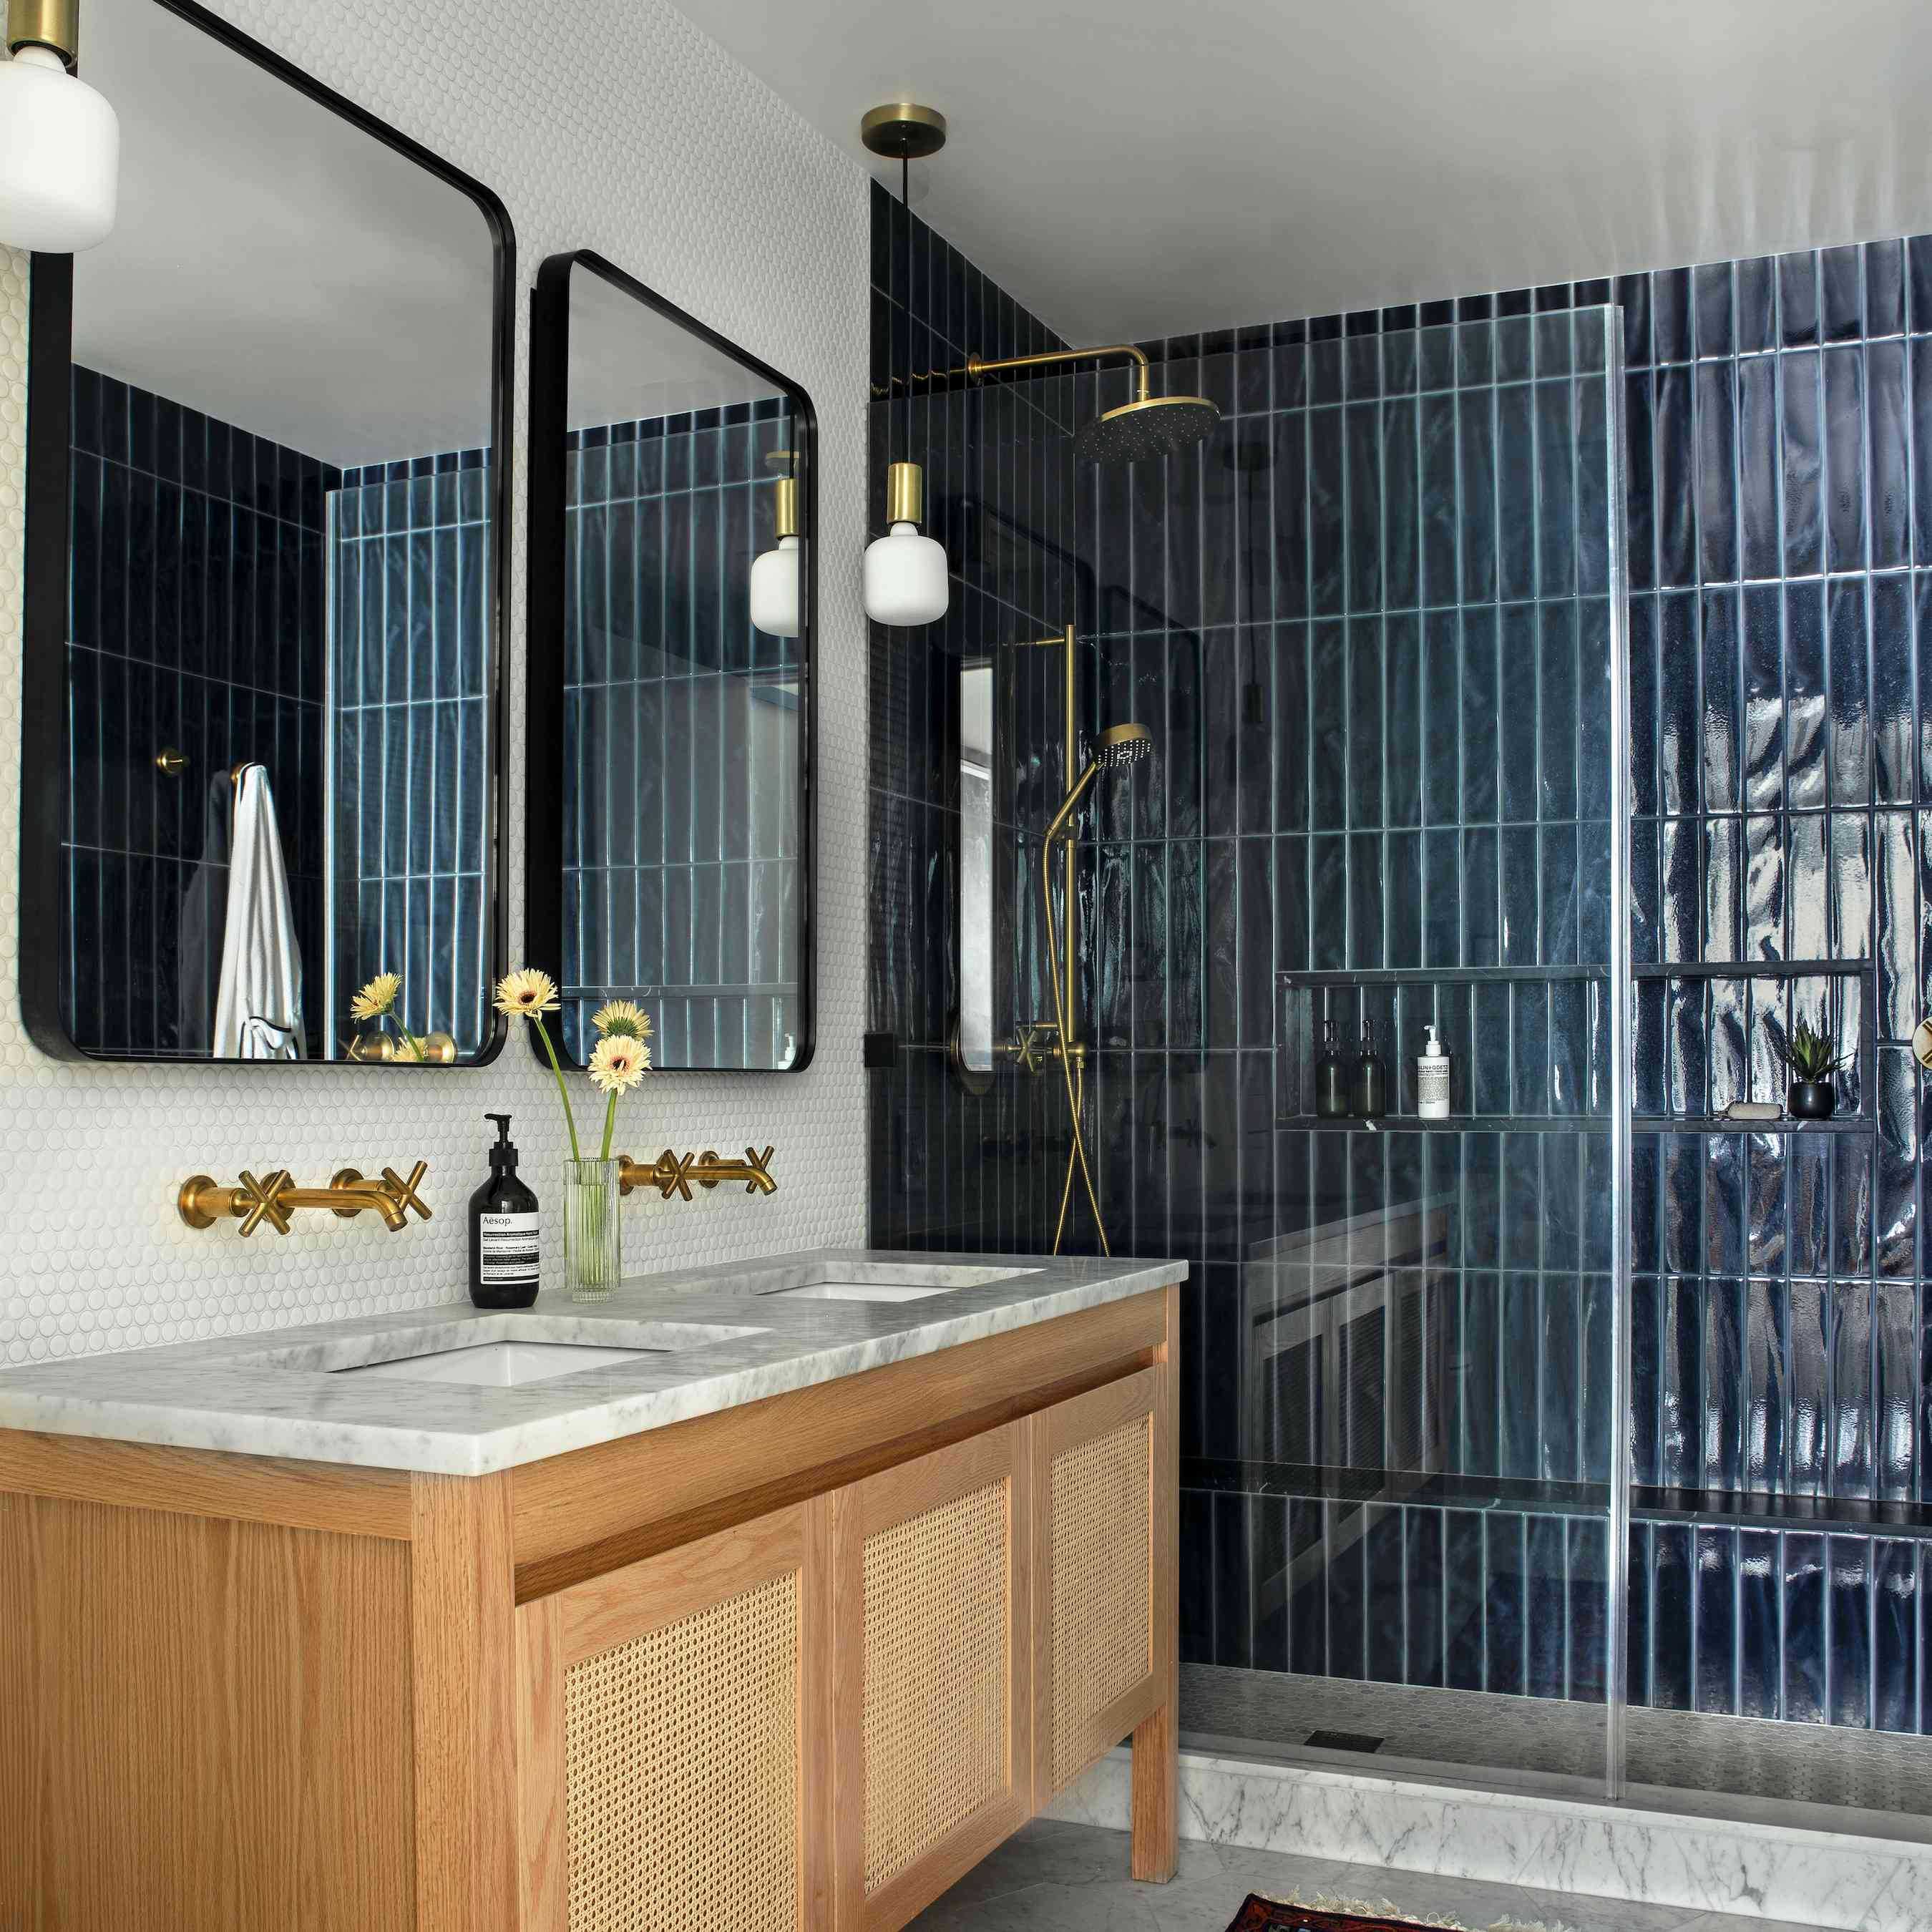 Bathroom with shiny blue tiled shower.